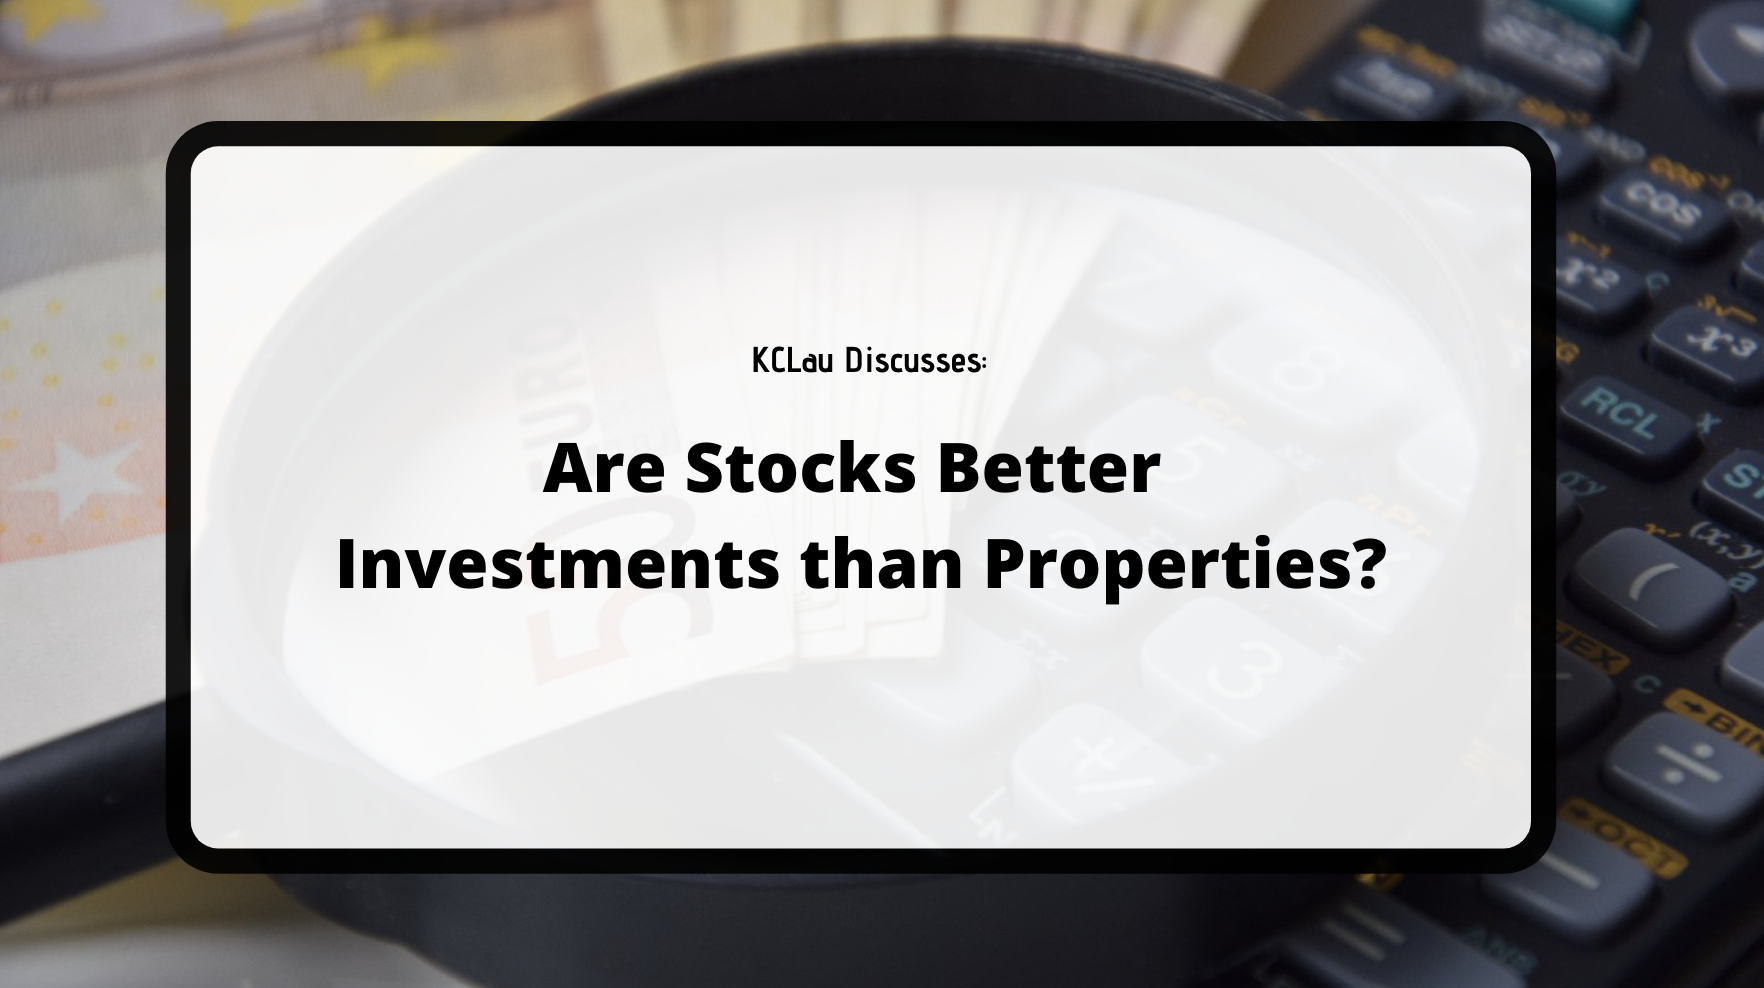 Are Stocks Better Investments than Properties?